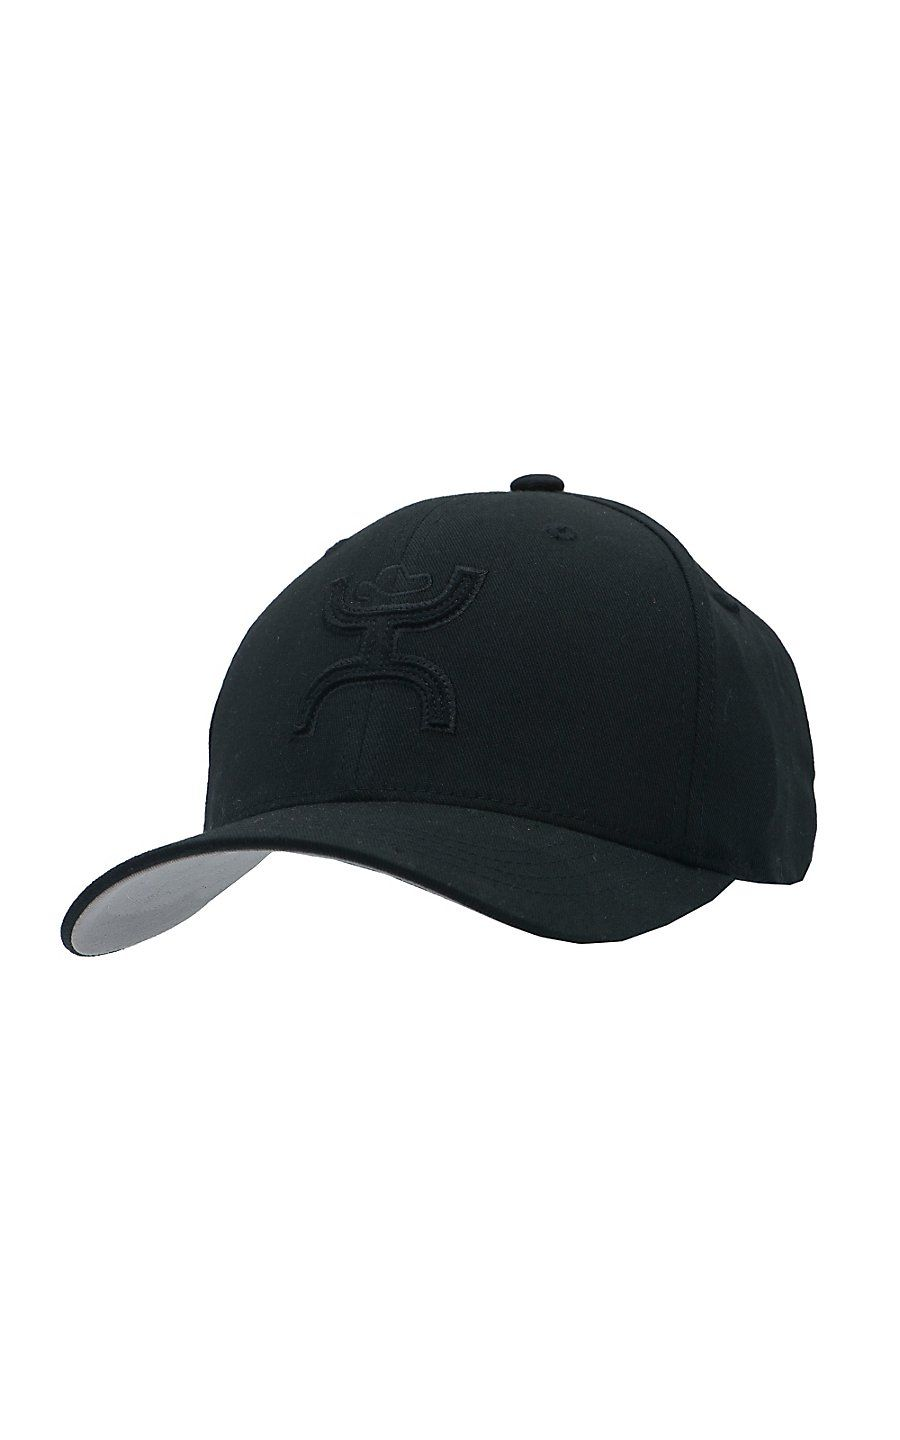 8f9244bac70 HOOey Black Stealth Two Tone Cowboy Logo Flex Fit Cap | Cowboy Hats ...